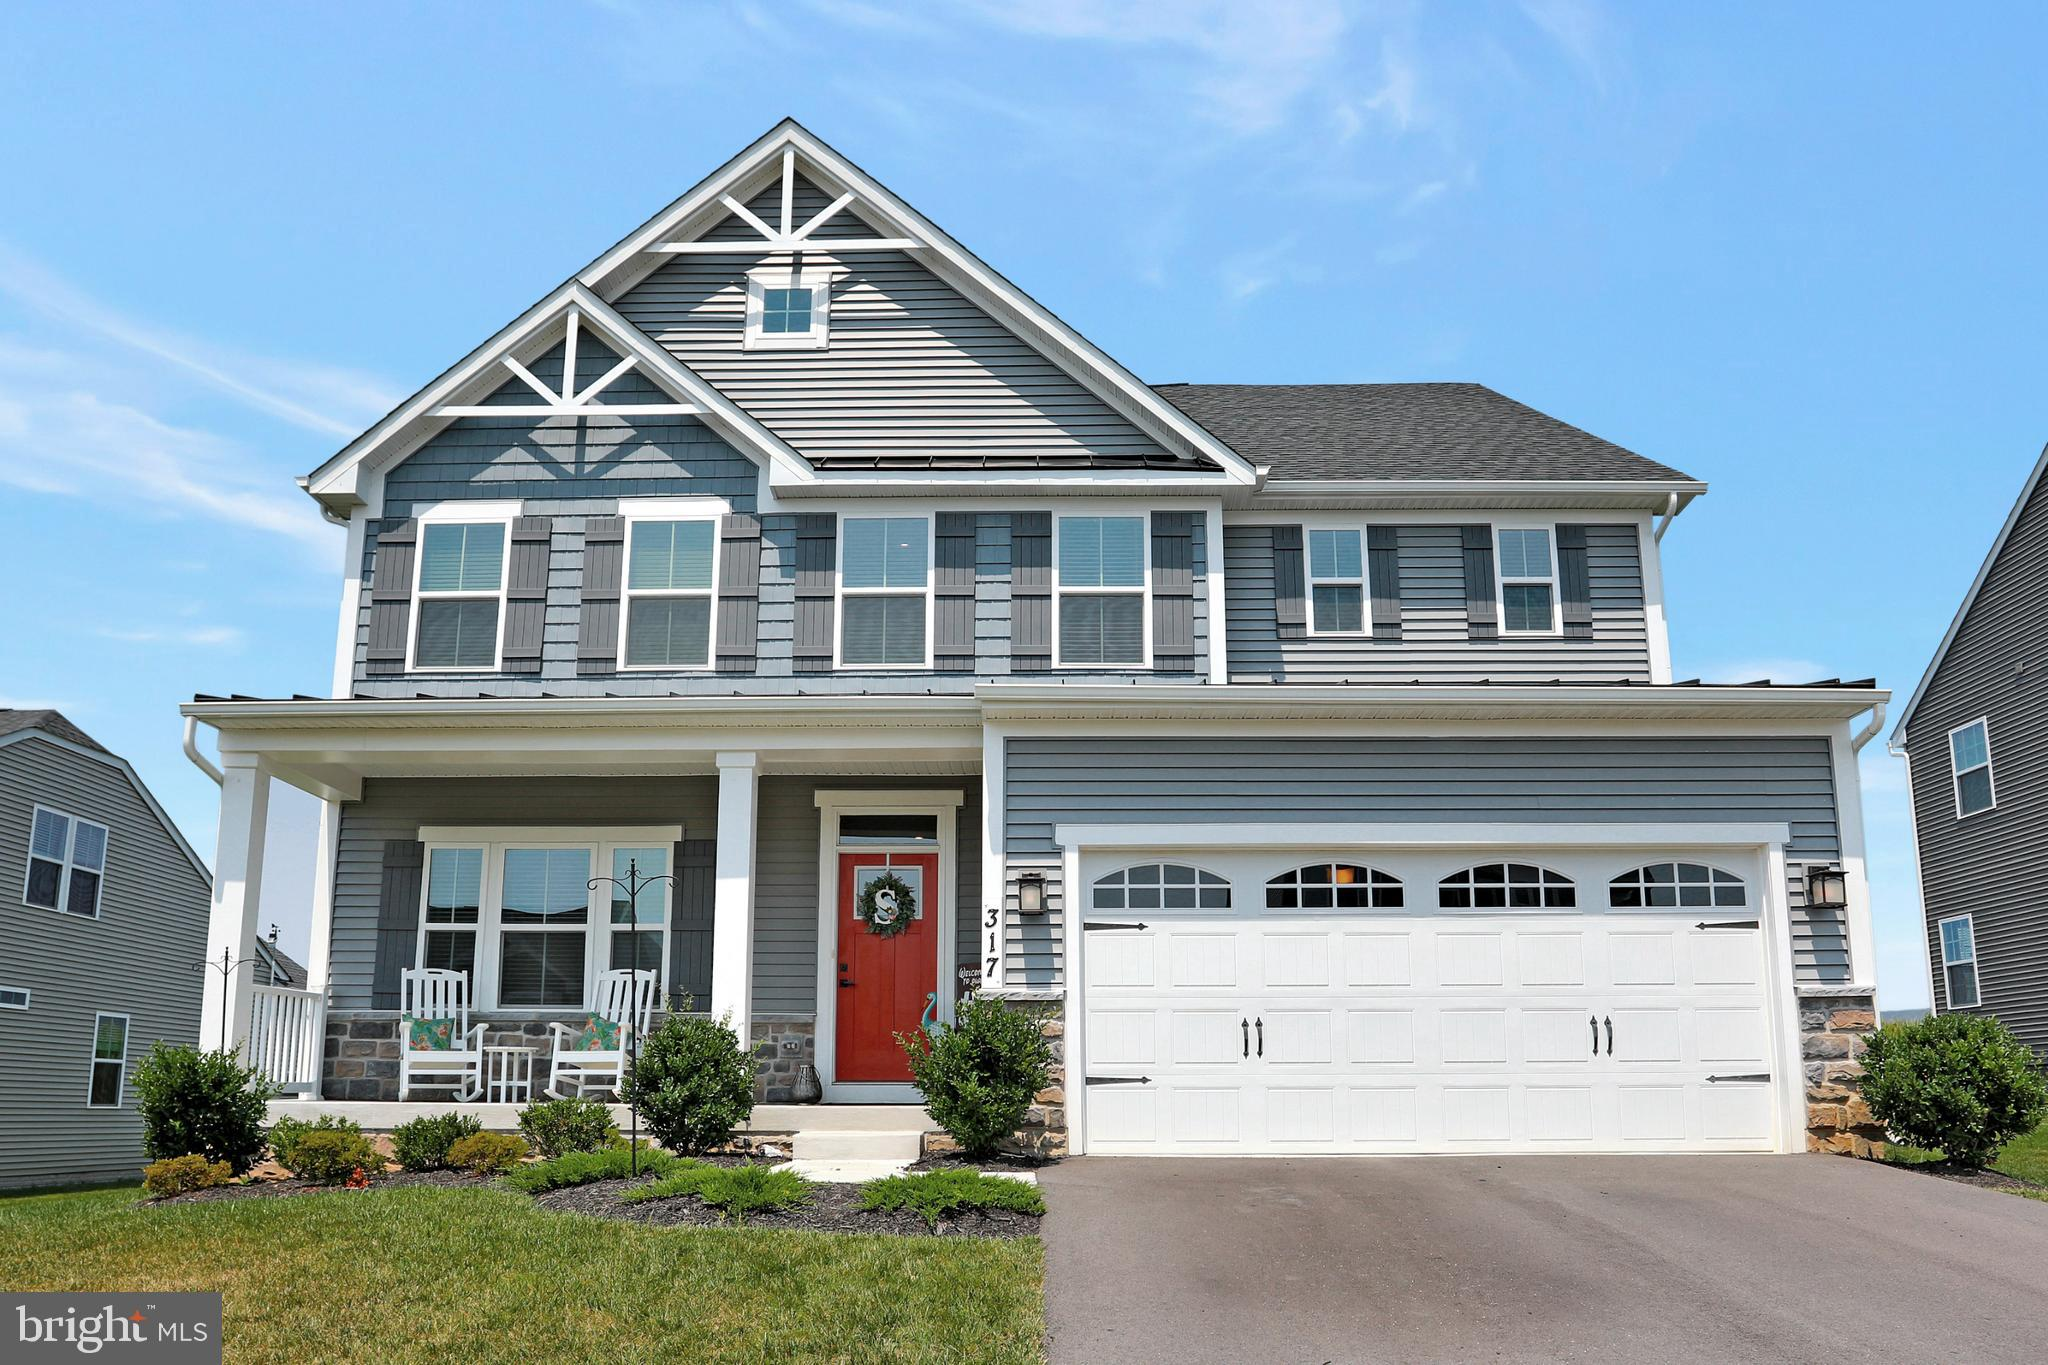 Situated in a great neighborhood, this stunning home offering loads of upgrades including the Crafts